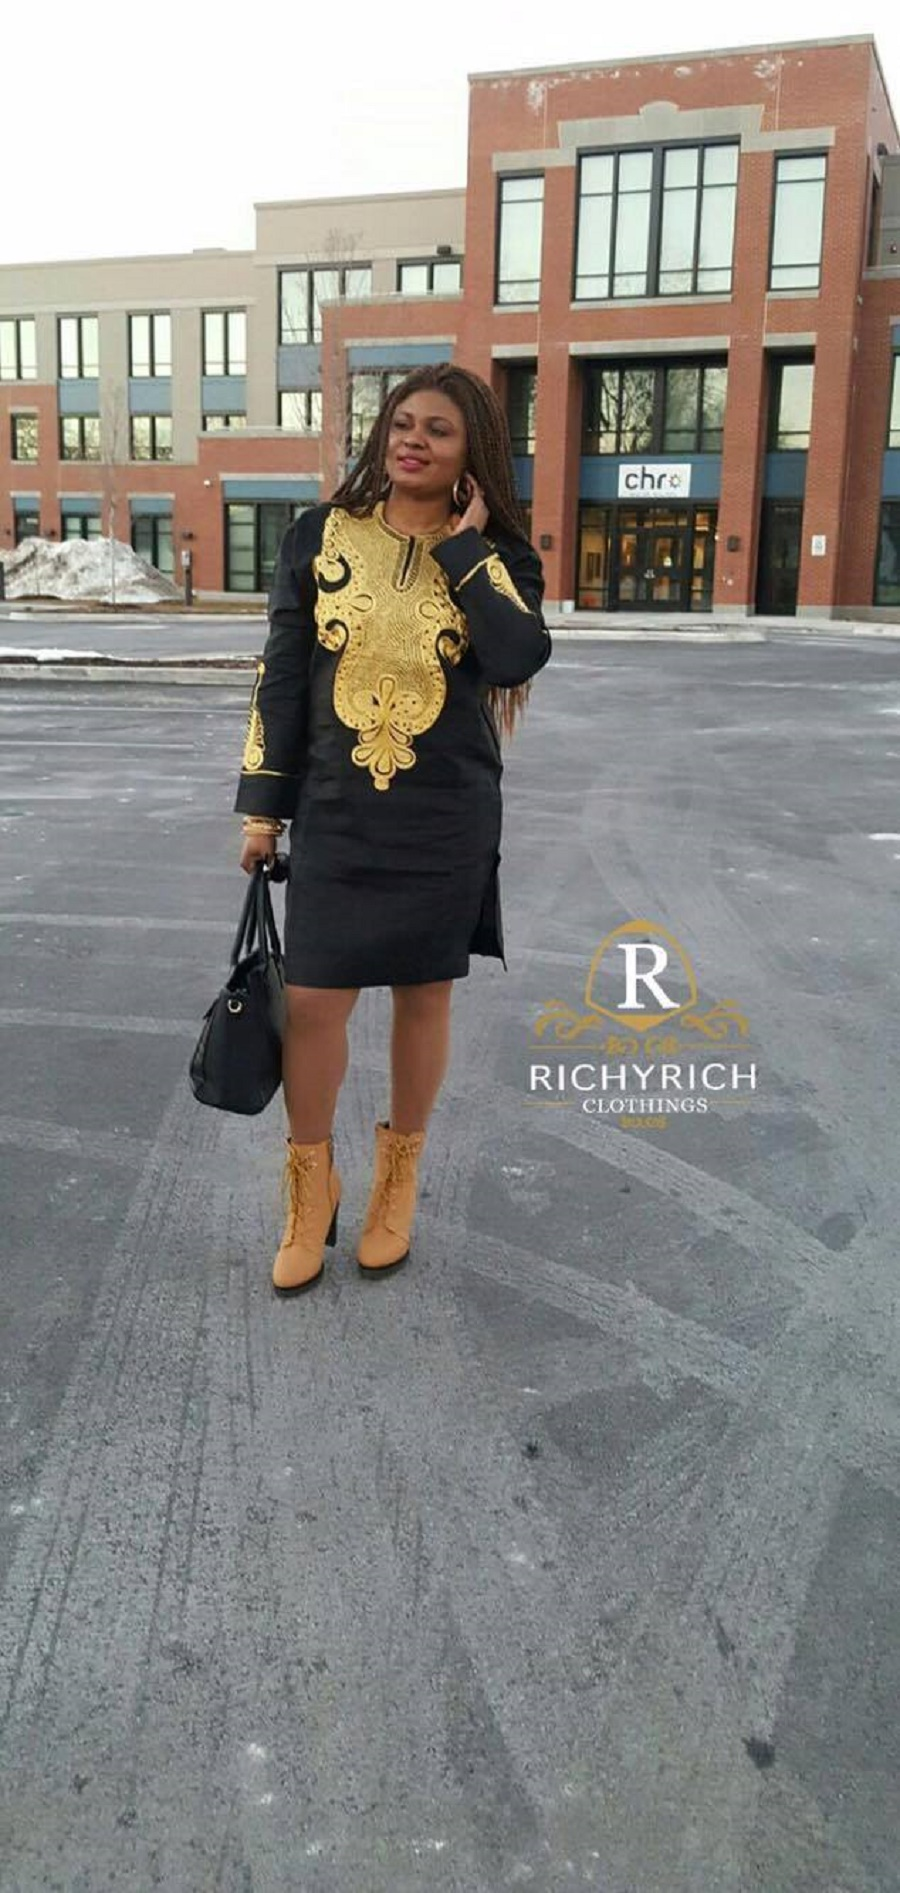 RichyRich-Clothings9